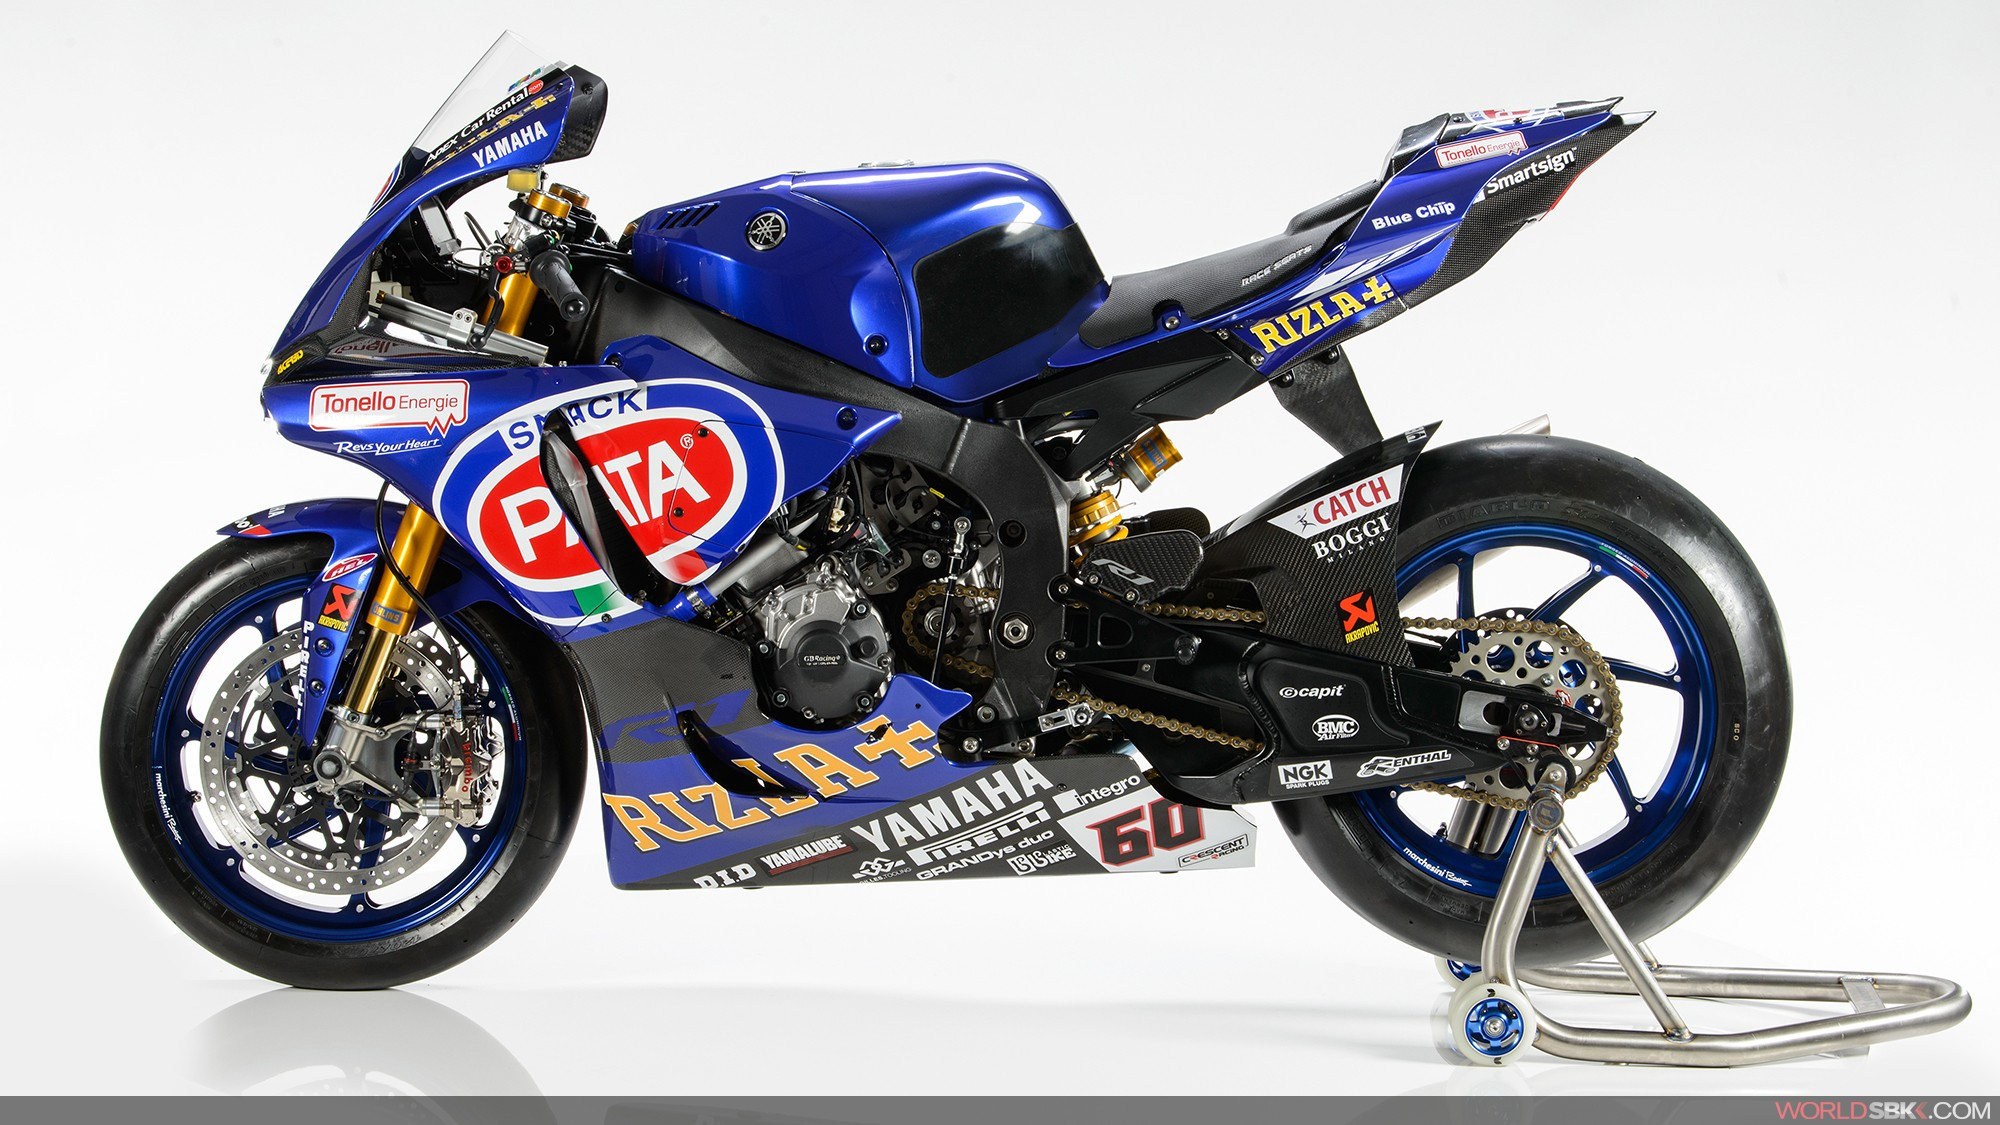 Yamaha Reveals 2017 Racing Liveries